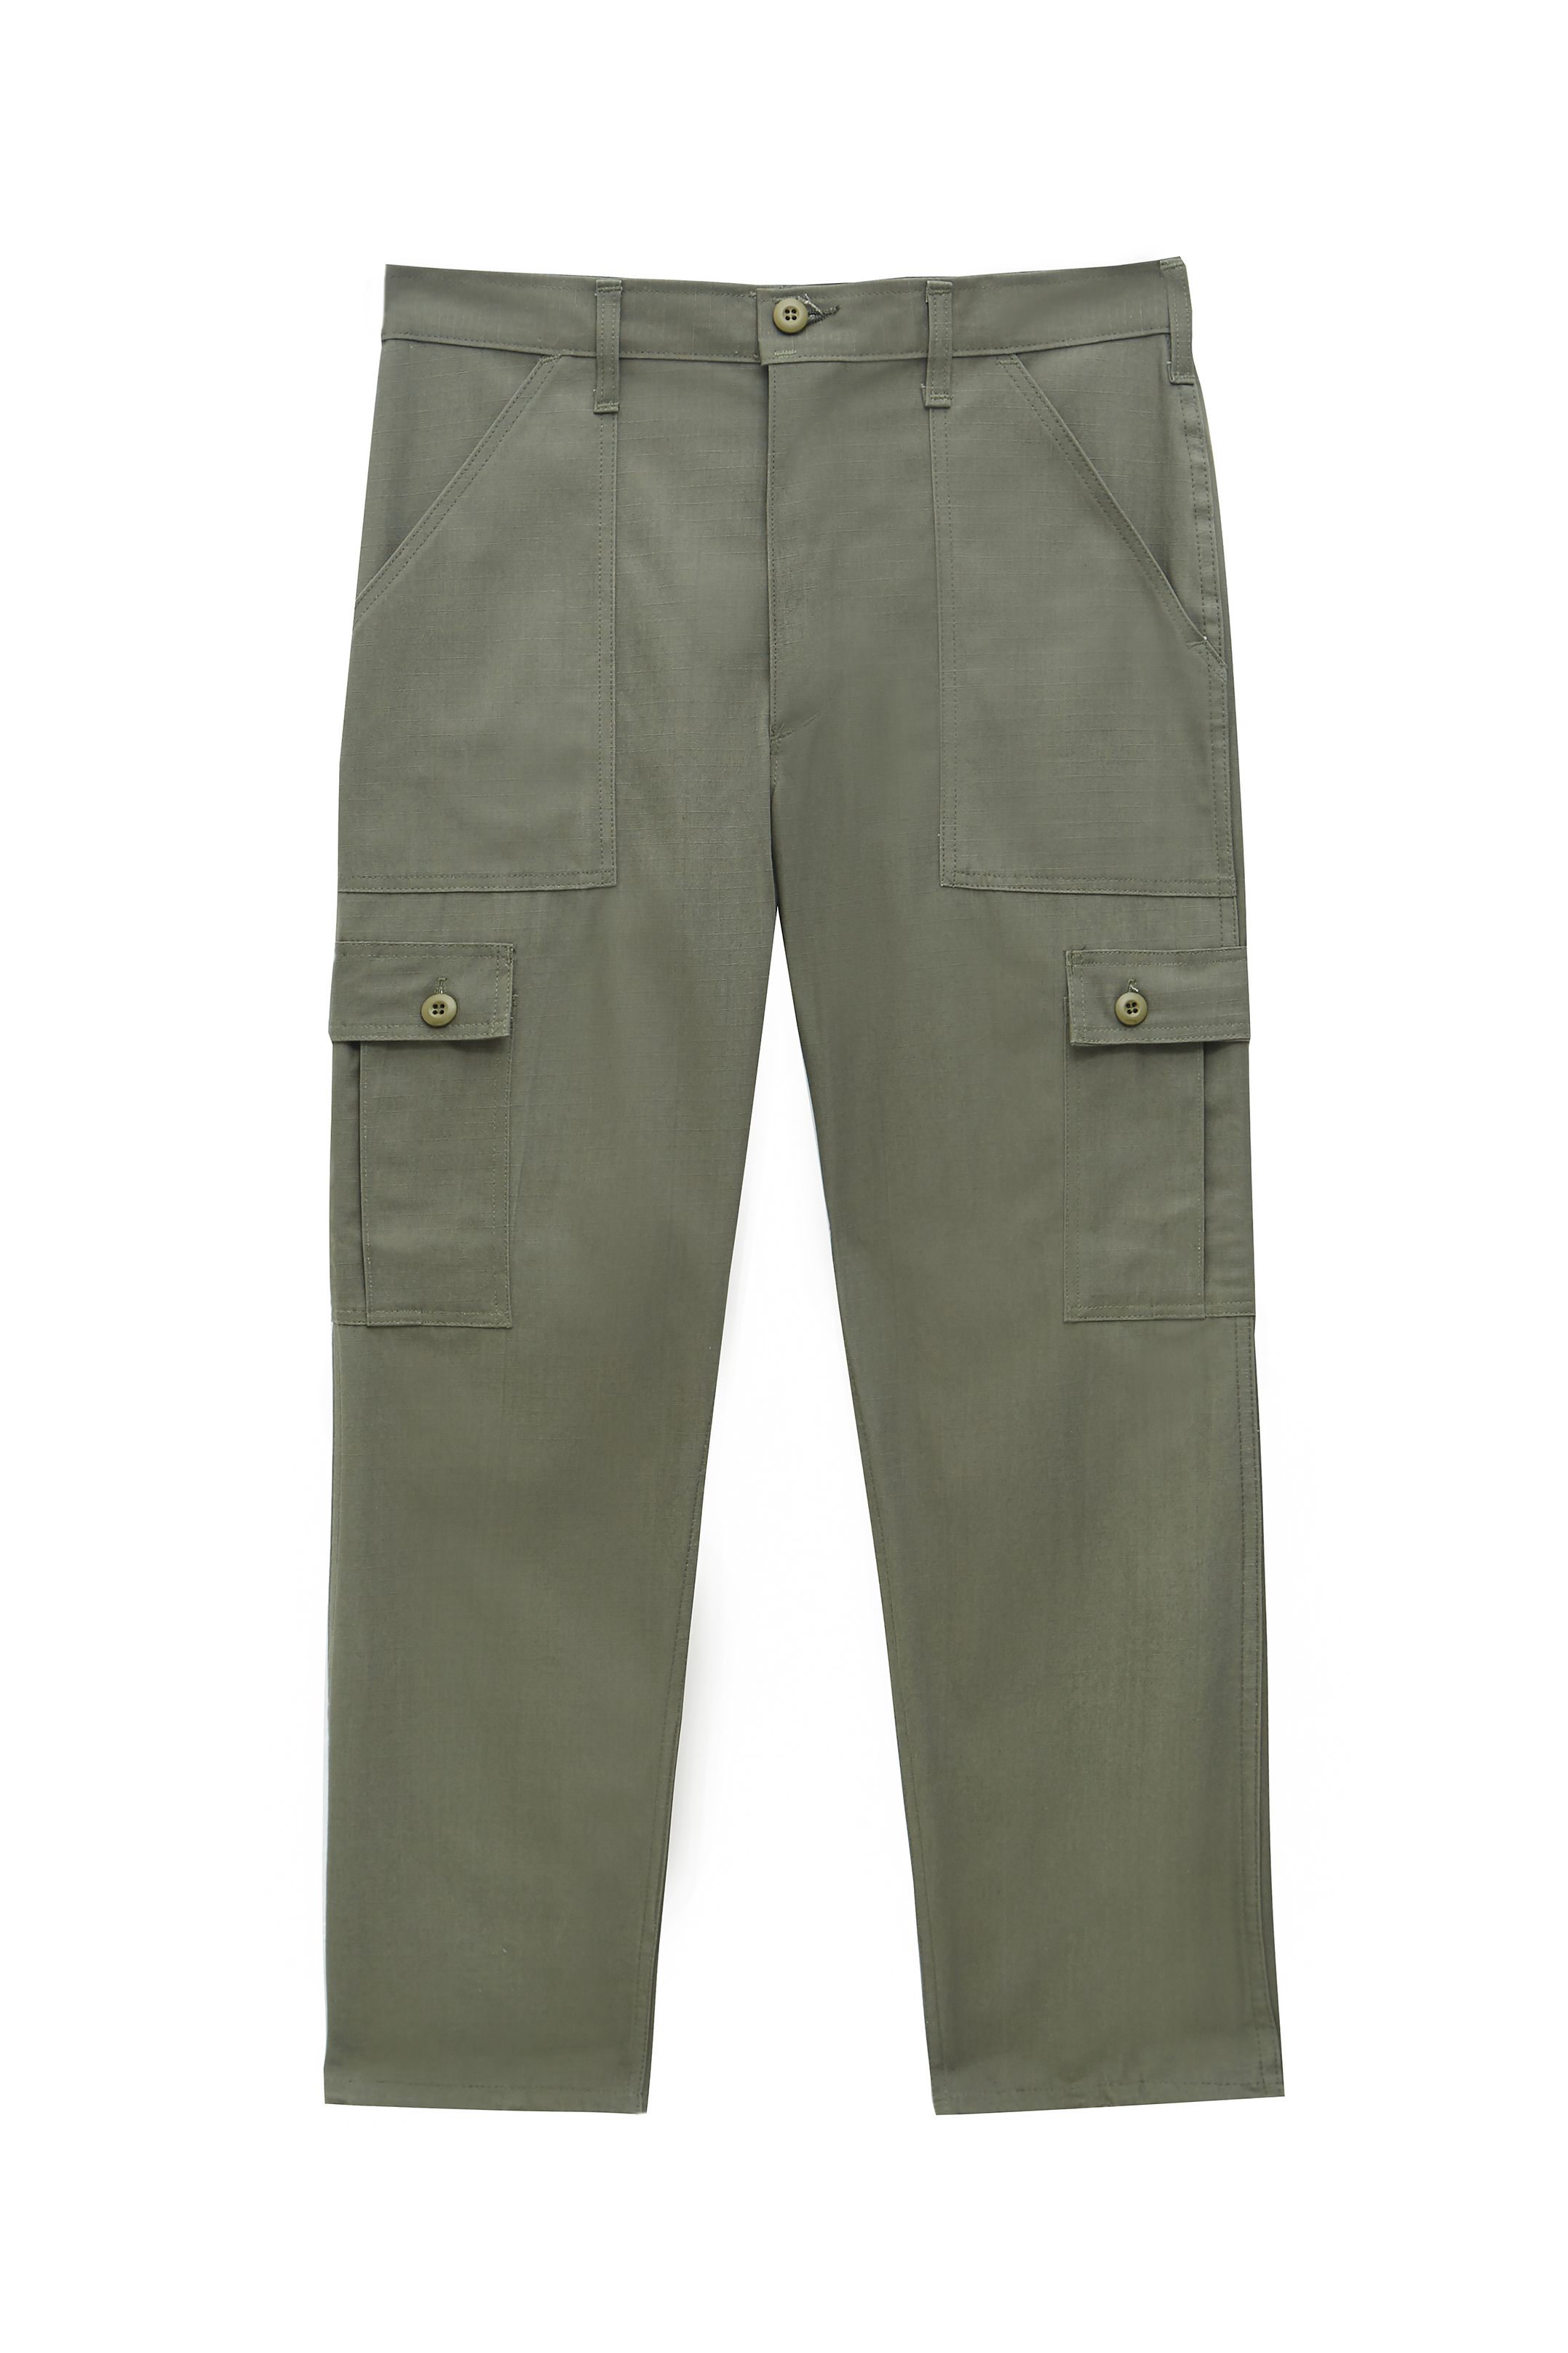 Stan Ray trousers at Urban Outfitters £65 or 90 euros